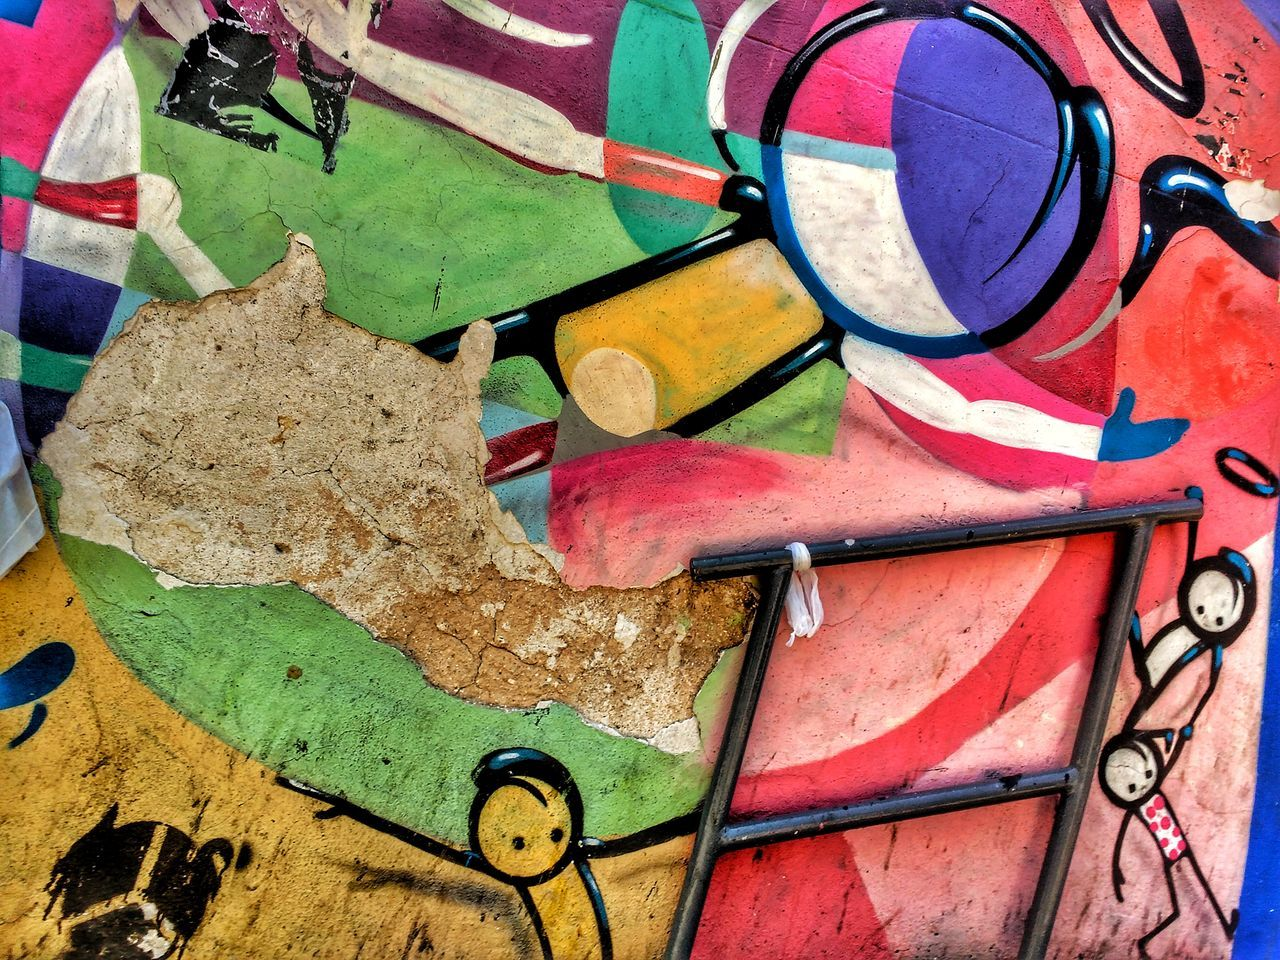 Colourful graffiti in Rio. Multi Colored Close-up No People Green Color Day Graffiti Graffiti Art Street Street Art Brazilian City Outdoors Colors Colorful Colours Colourful Art Abstract Abandoned Bright Creative Wall City Life Poverty Political Street Art